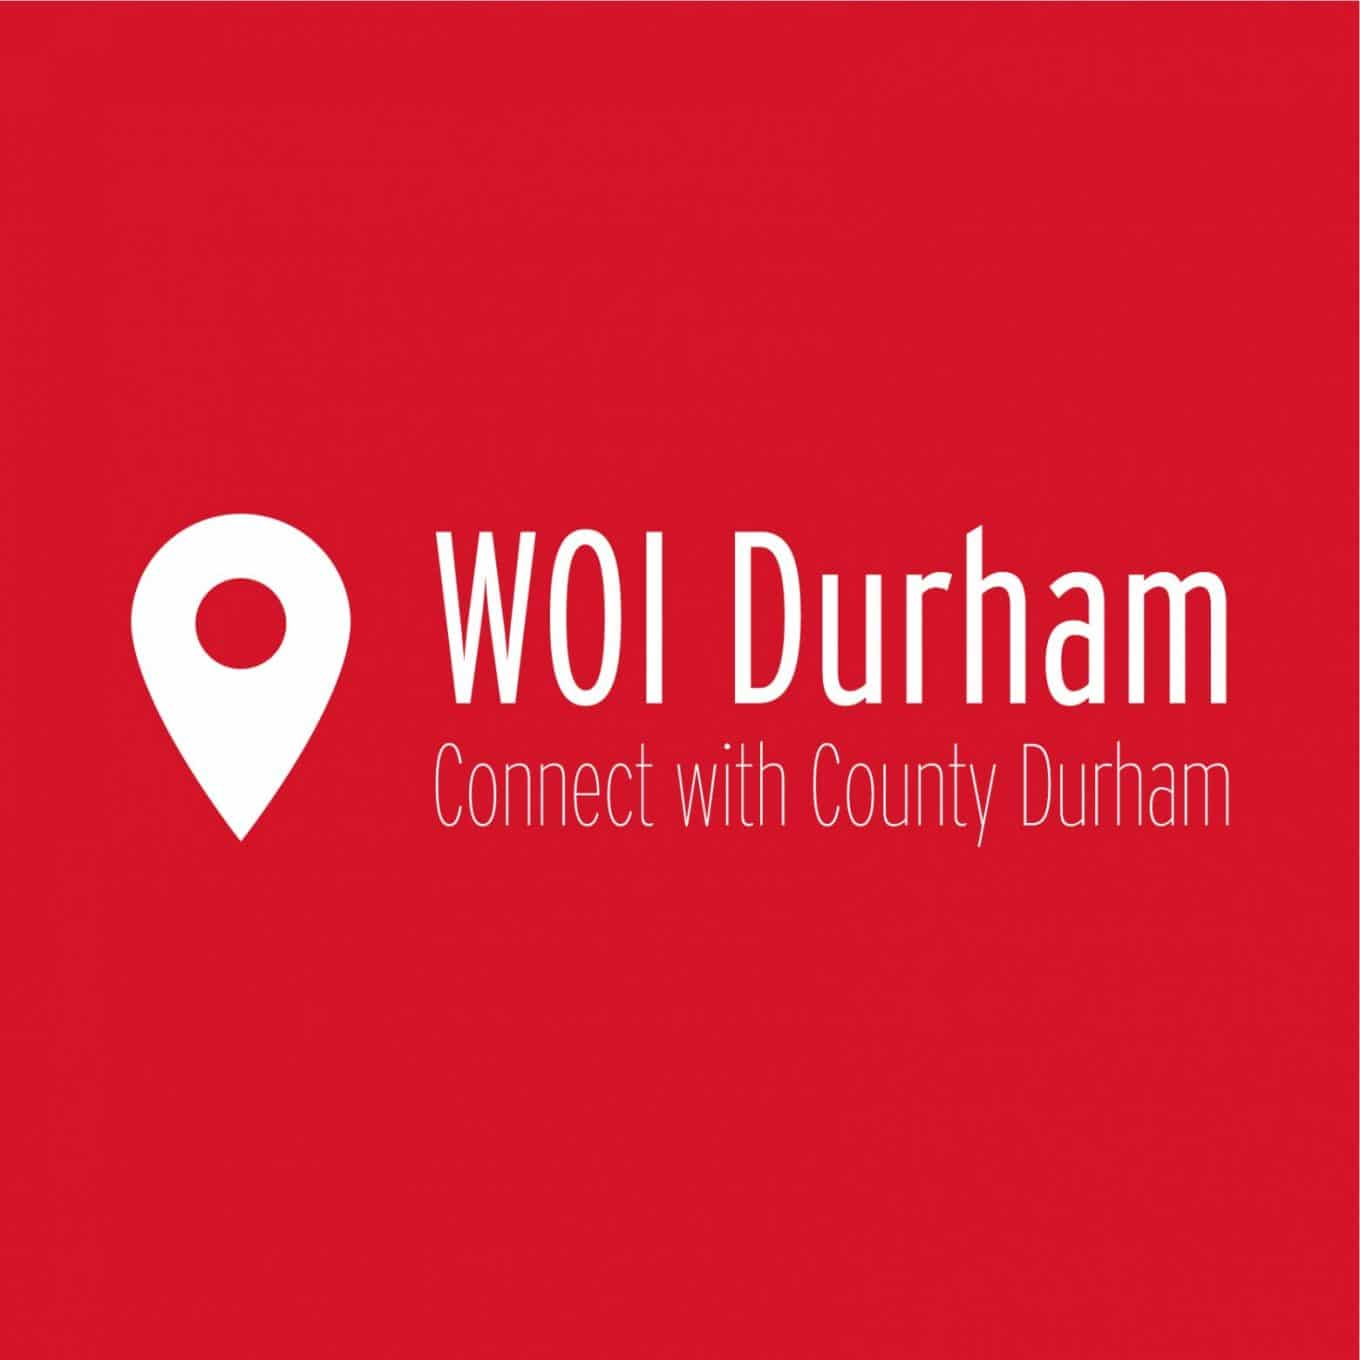 Whats On In Durham